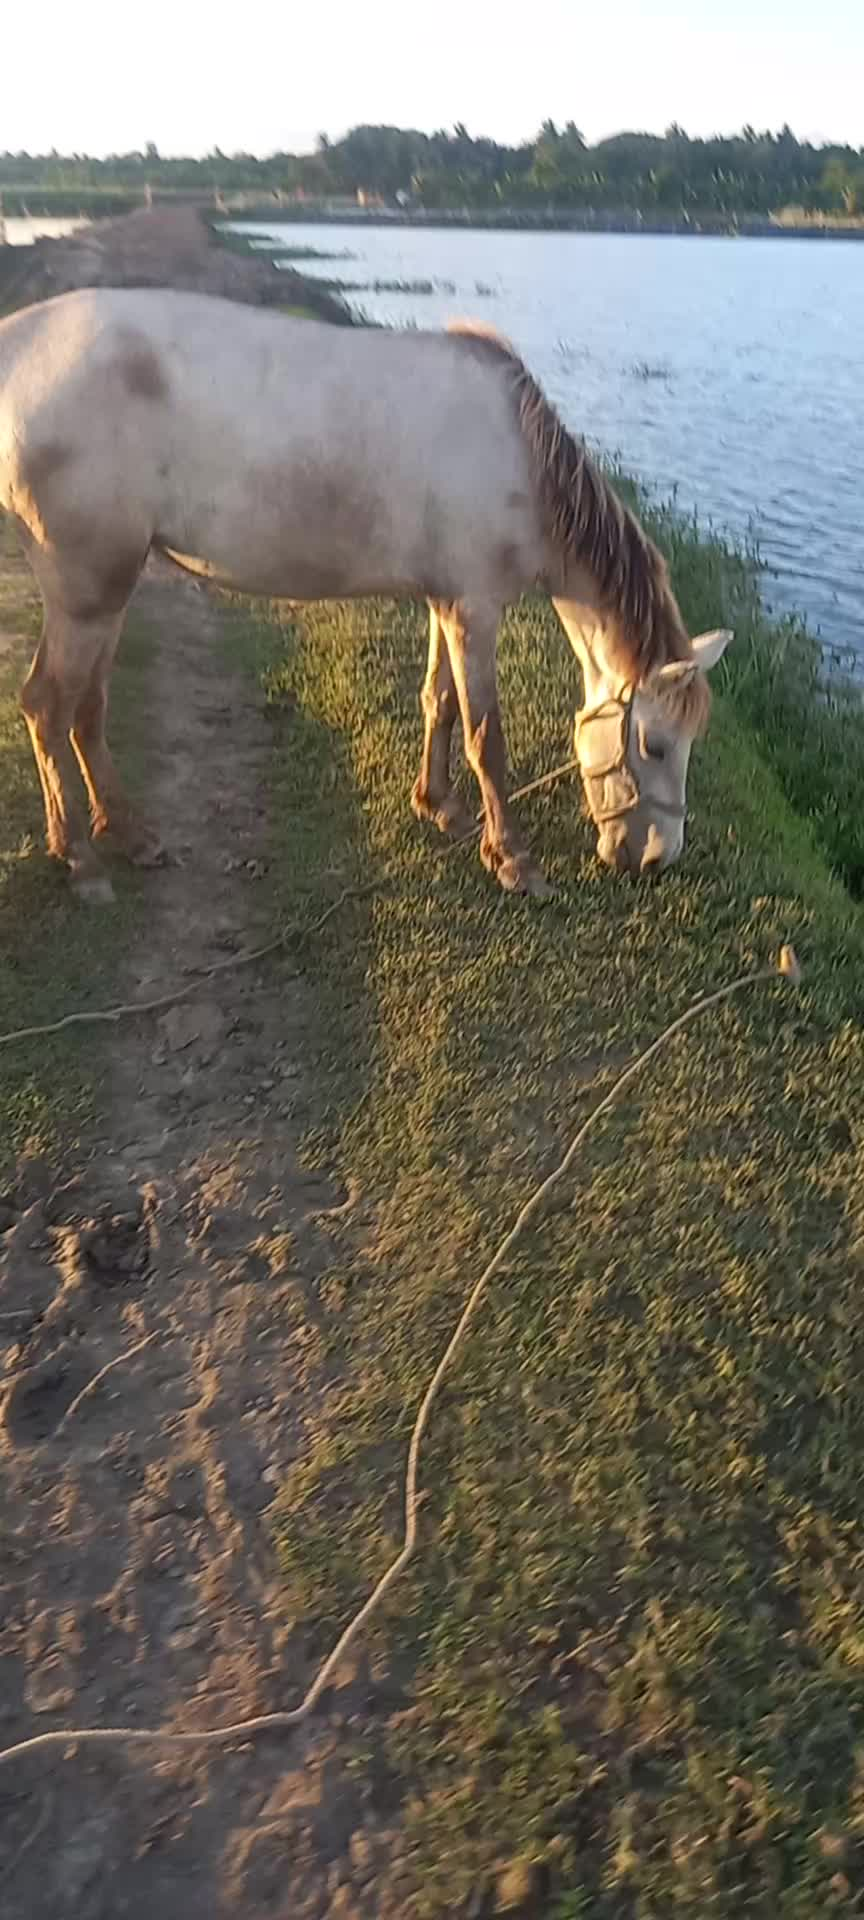 This is a video of a horse eating grass inside when it sounds green. This scene is a beauty of nature in the village.